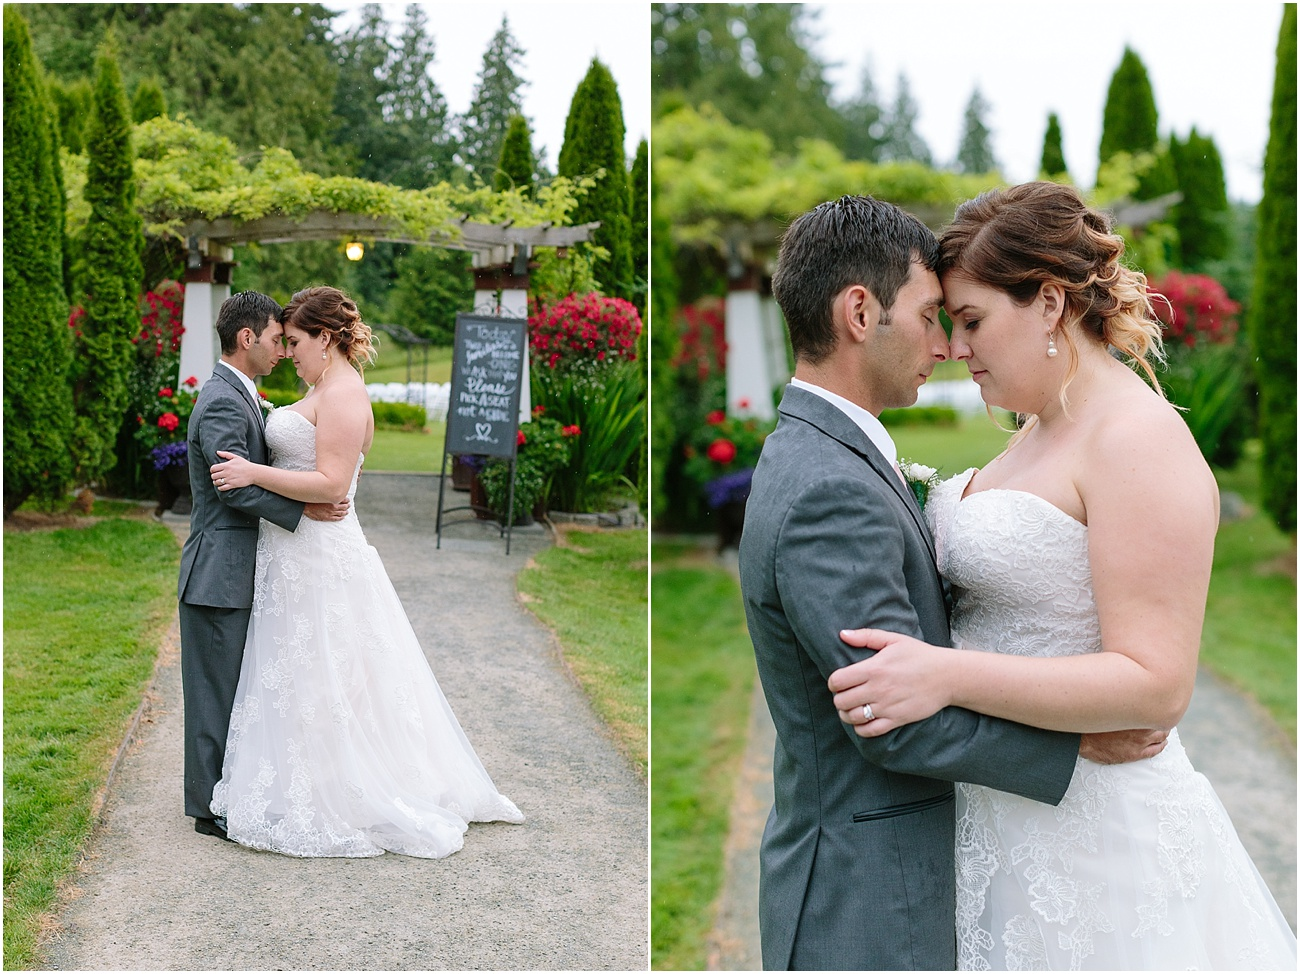 Tauzin_Wedding_Tazer_Valley_Farm_Stanwood_Washington__0065